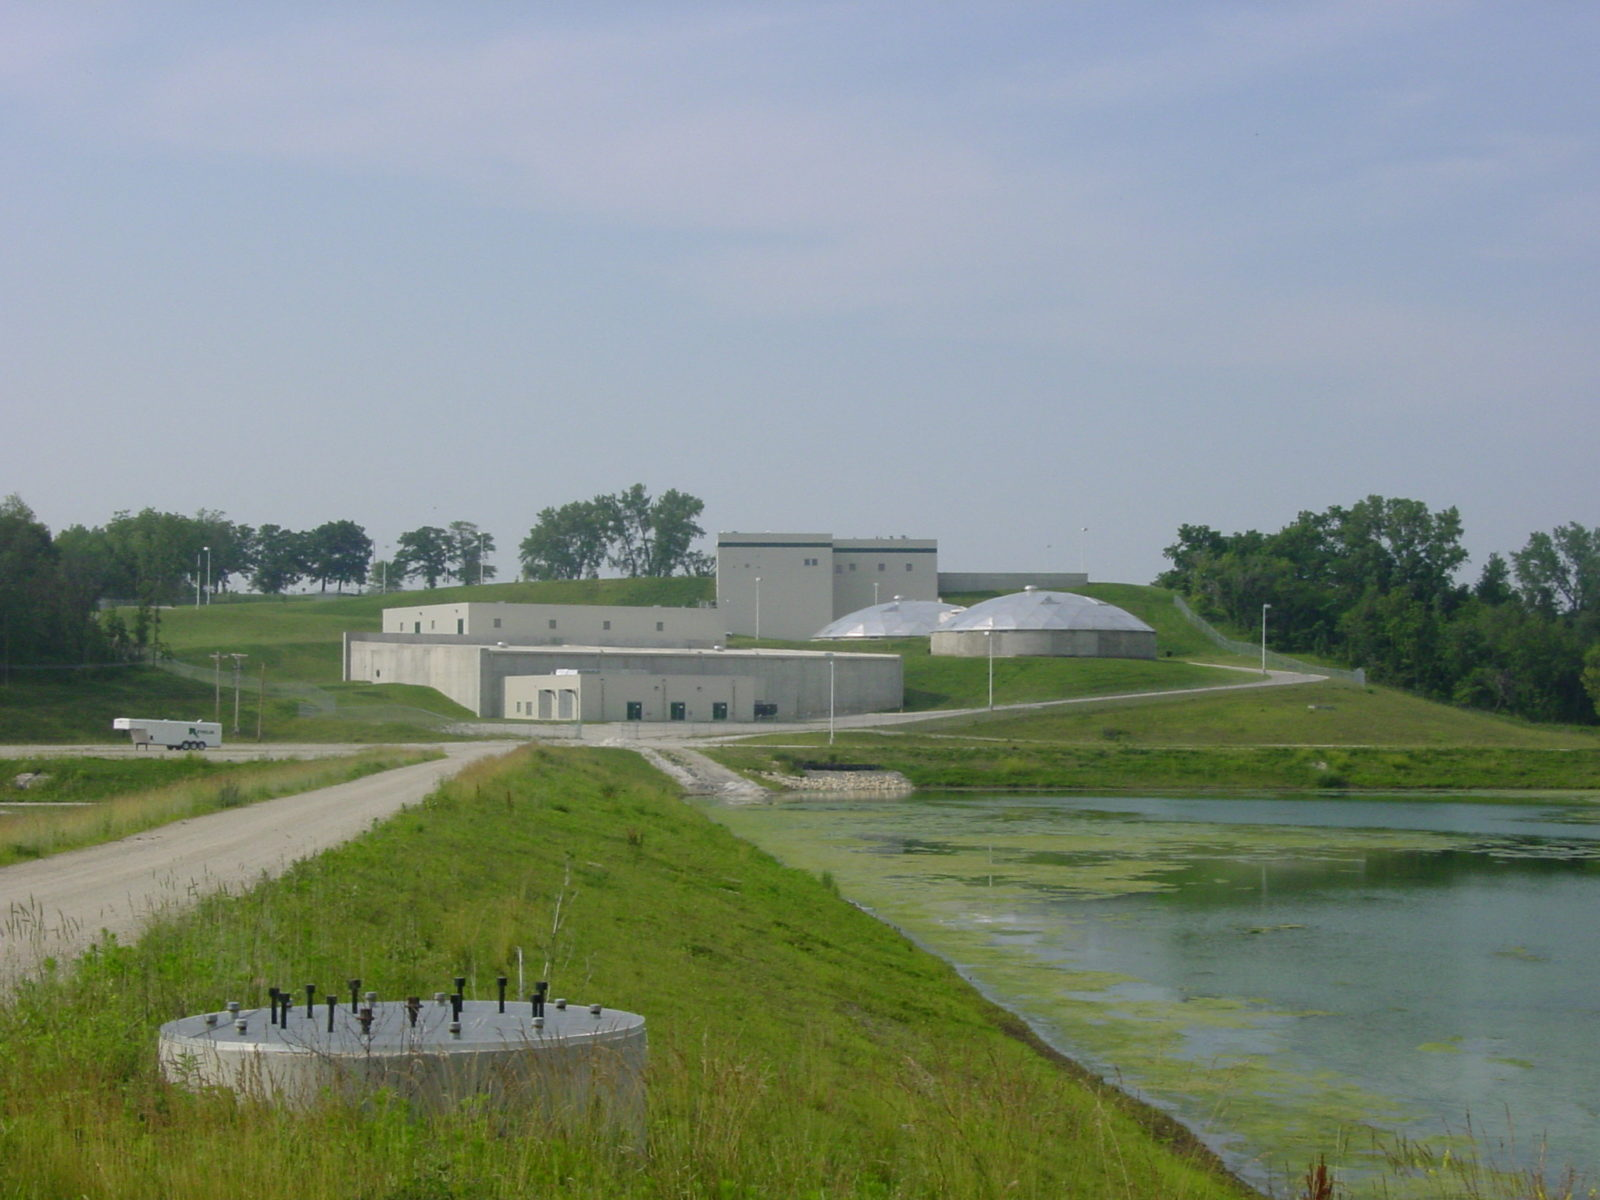 Maffitt Water Treatment Plant